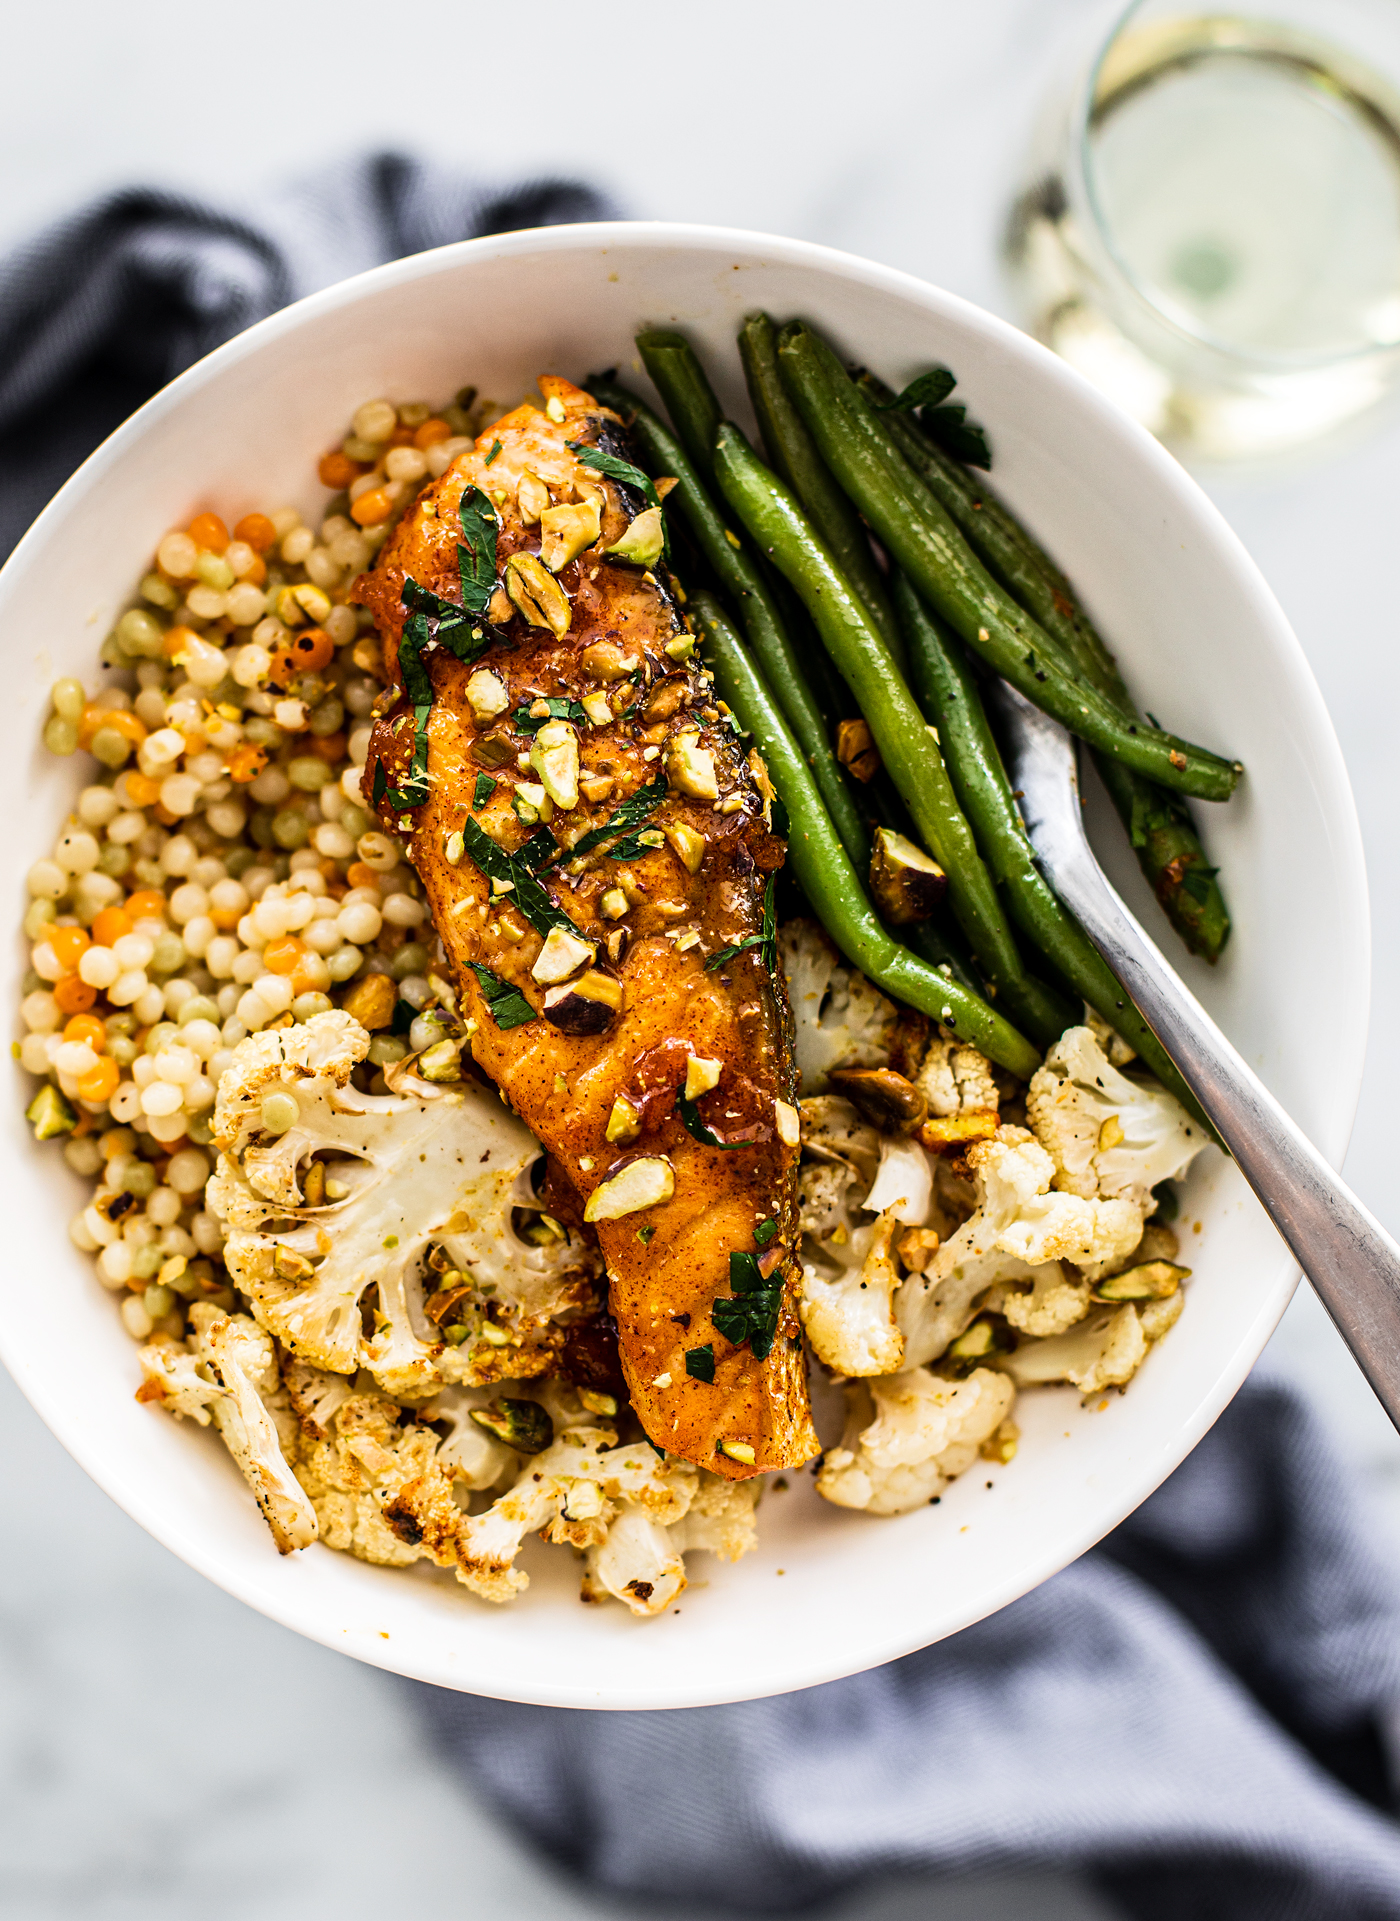 Overhead shot of serving of salmon, cauliflower, and green beans over couscous.